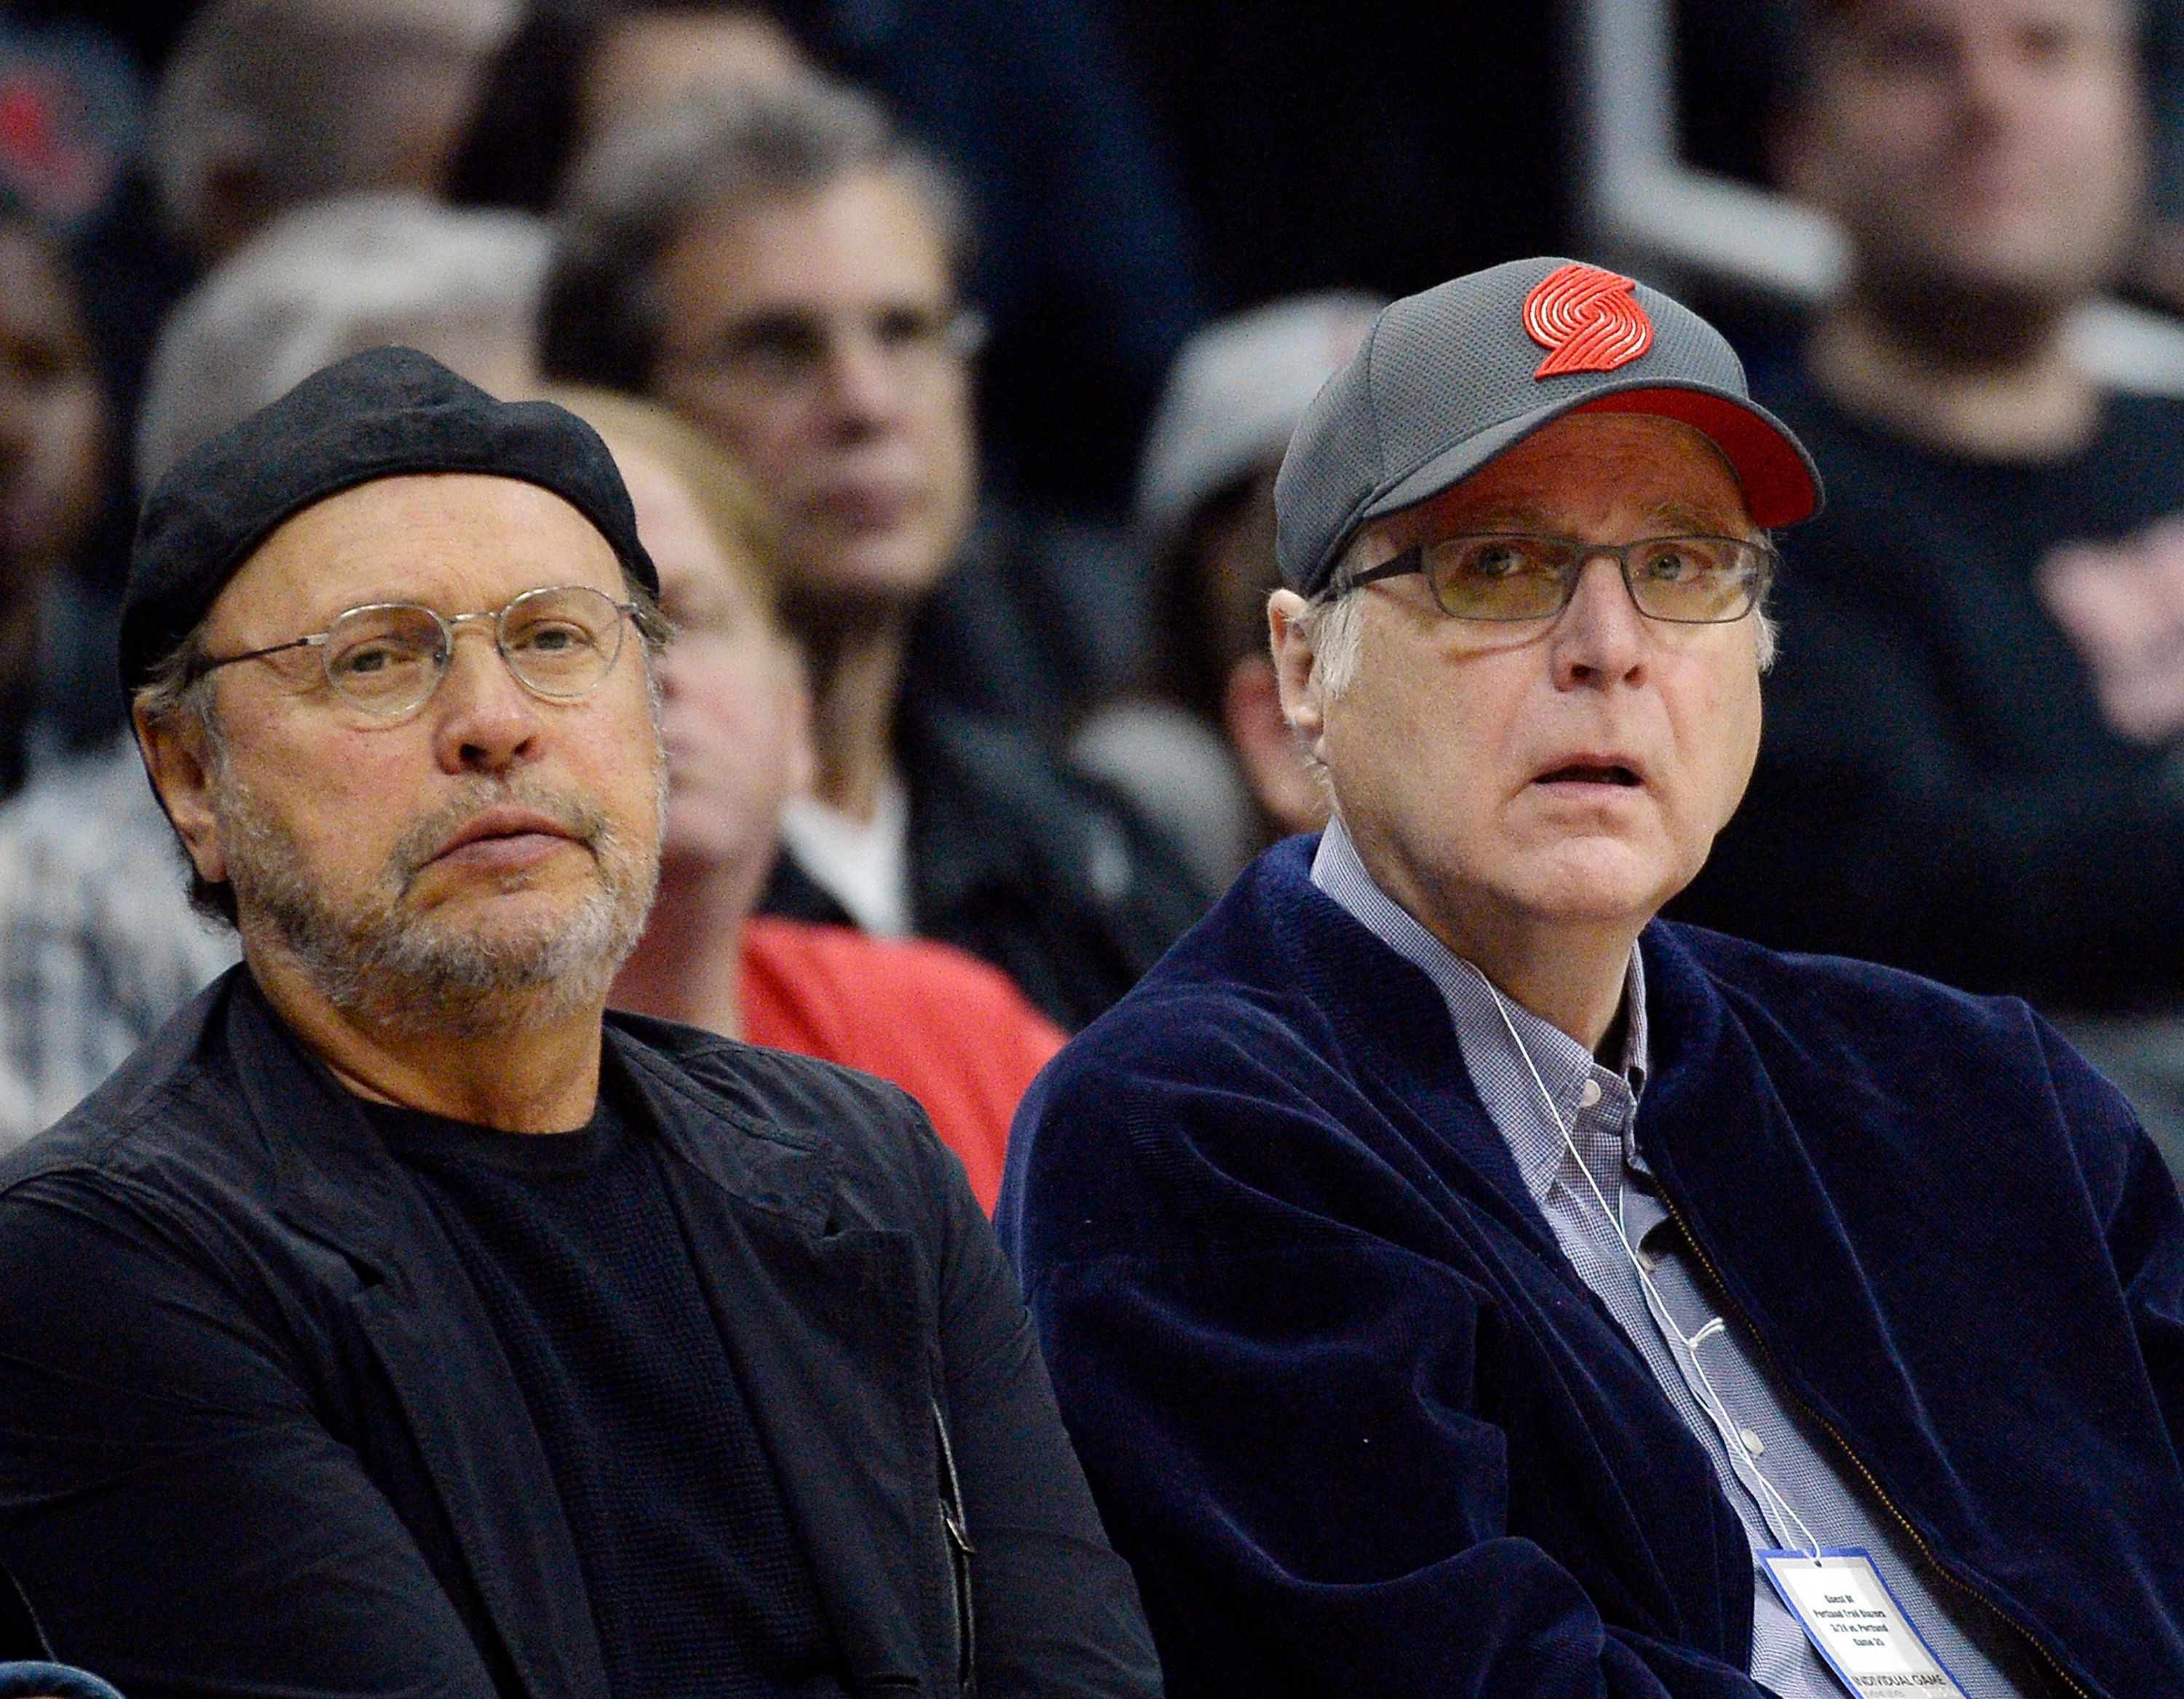 LOS ANGELES, CA - MARCH 24: Actor/comedian Billy Crystal (R) and Paul Allen, co-founder of Microsoft and owner of Portland Trail Blazers, attend Los Angeles Clippers and Portland Trail Blazers basketball game at Staples Center March 24, 2016, in Los Angeles, California.  (Photo by (Photo by Kevork S. Djansezian/GC Images)